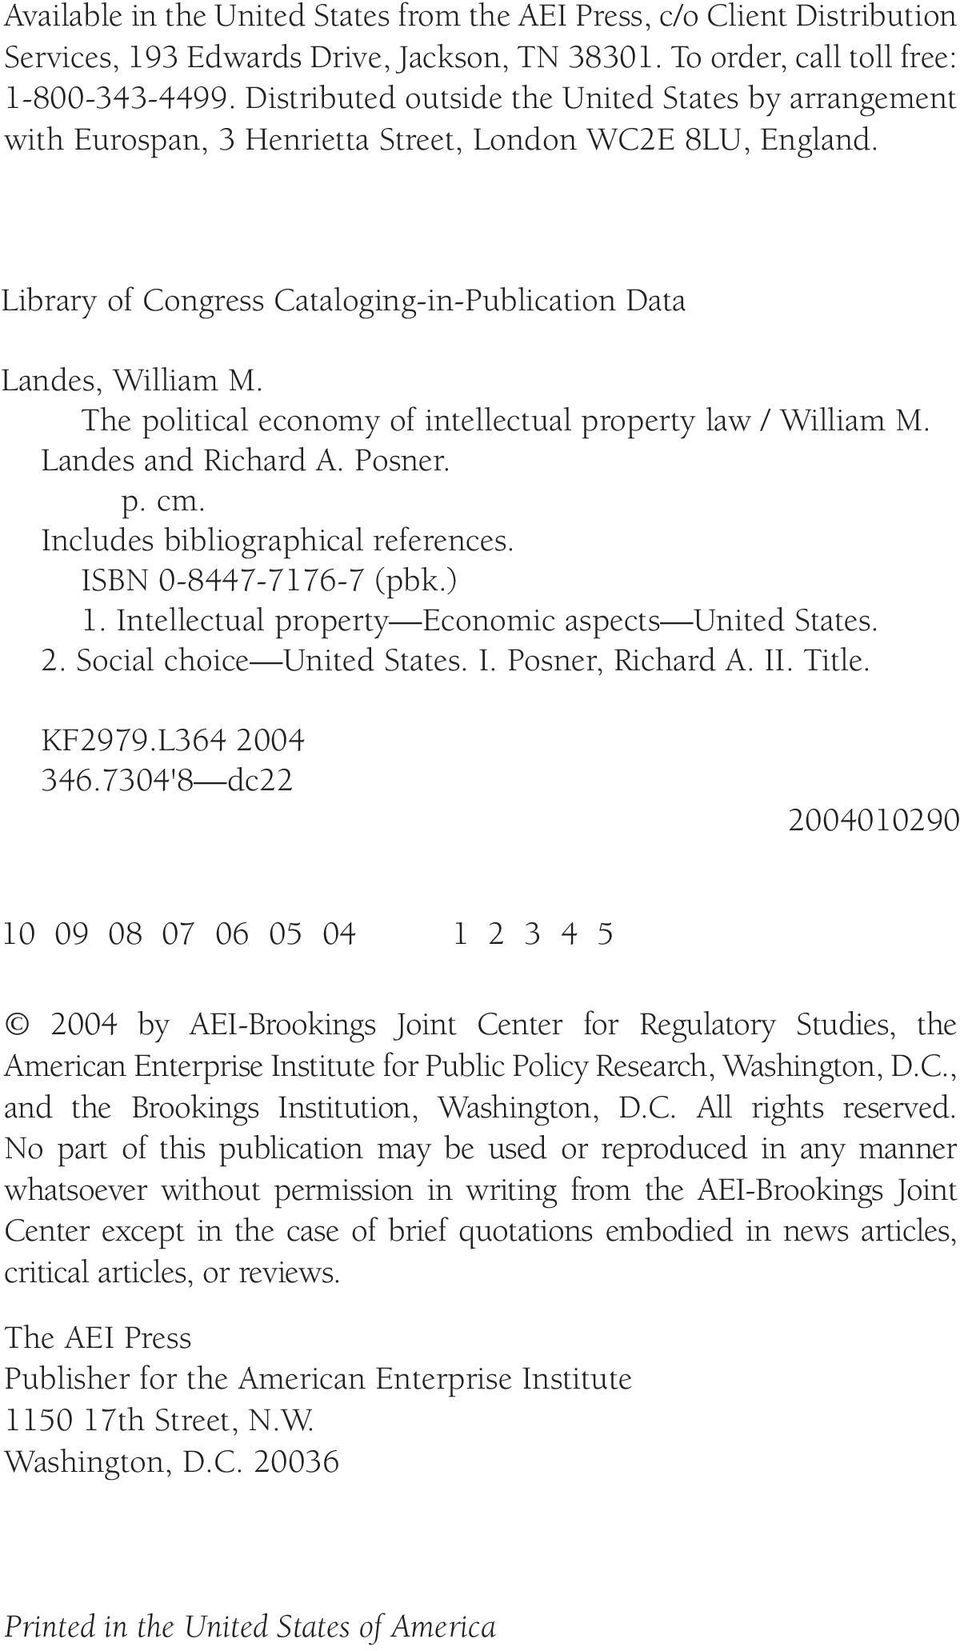 The political economy of intellectual property law / William M. Landes and Richard A. Posner. p. cm. Includes bibliographical references. ISBN 0-8447-7176-7 (pbk.) 1.